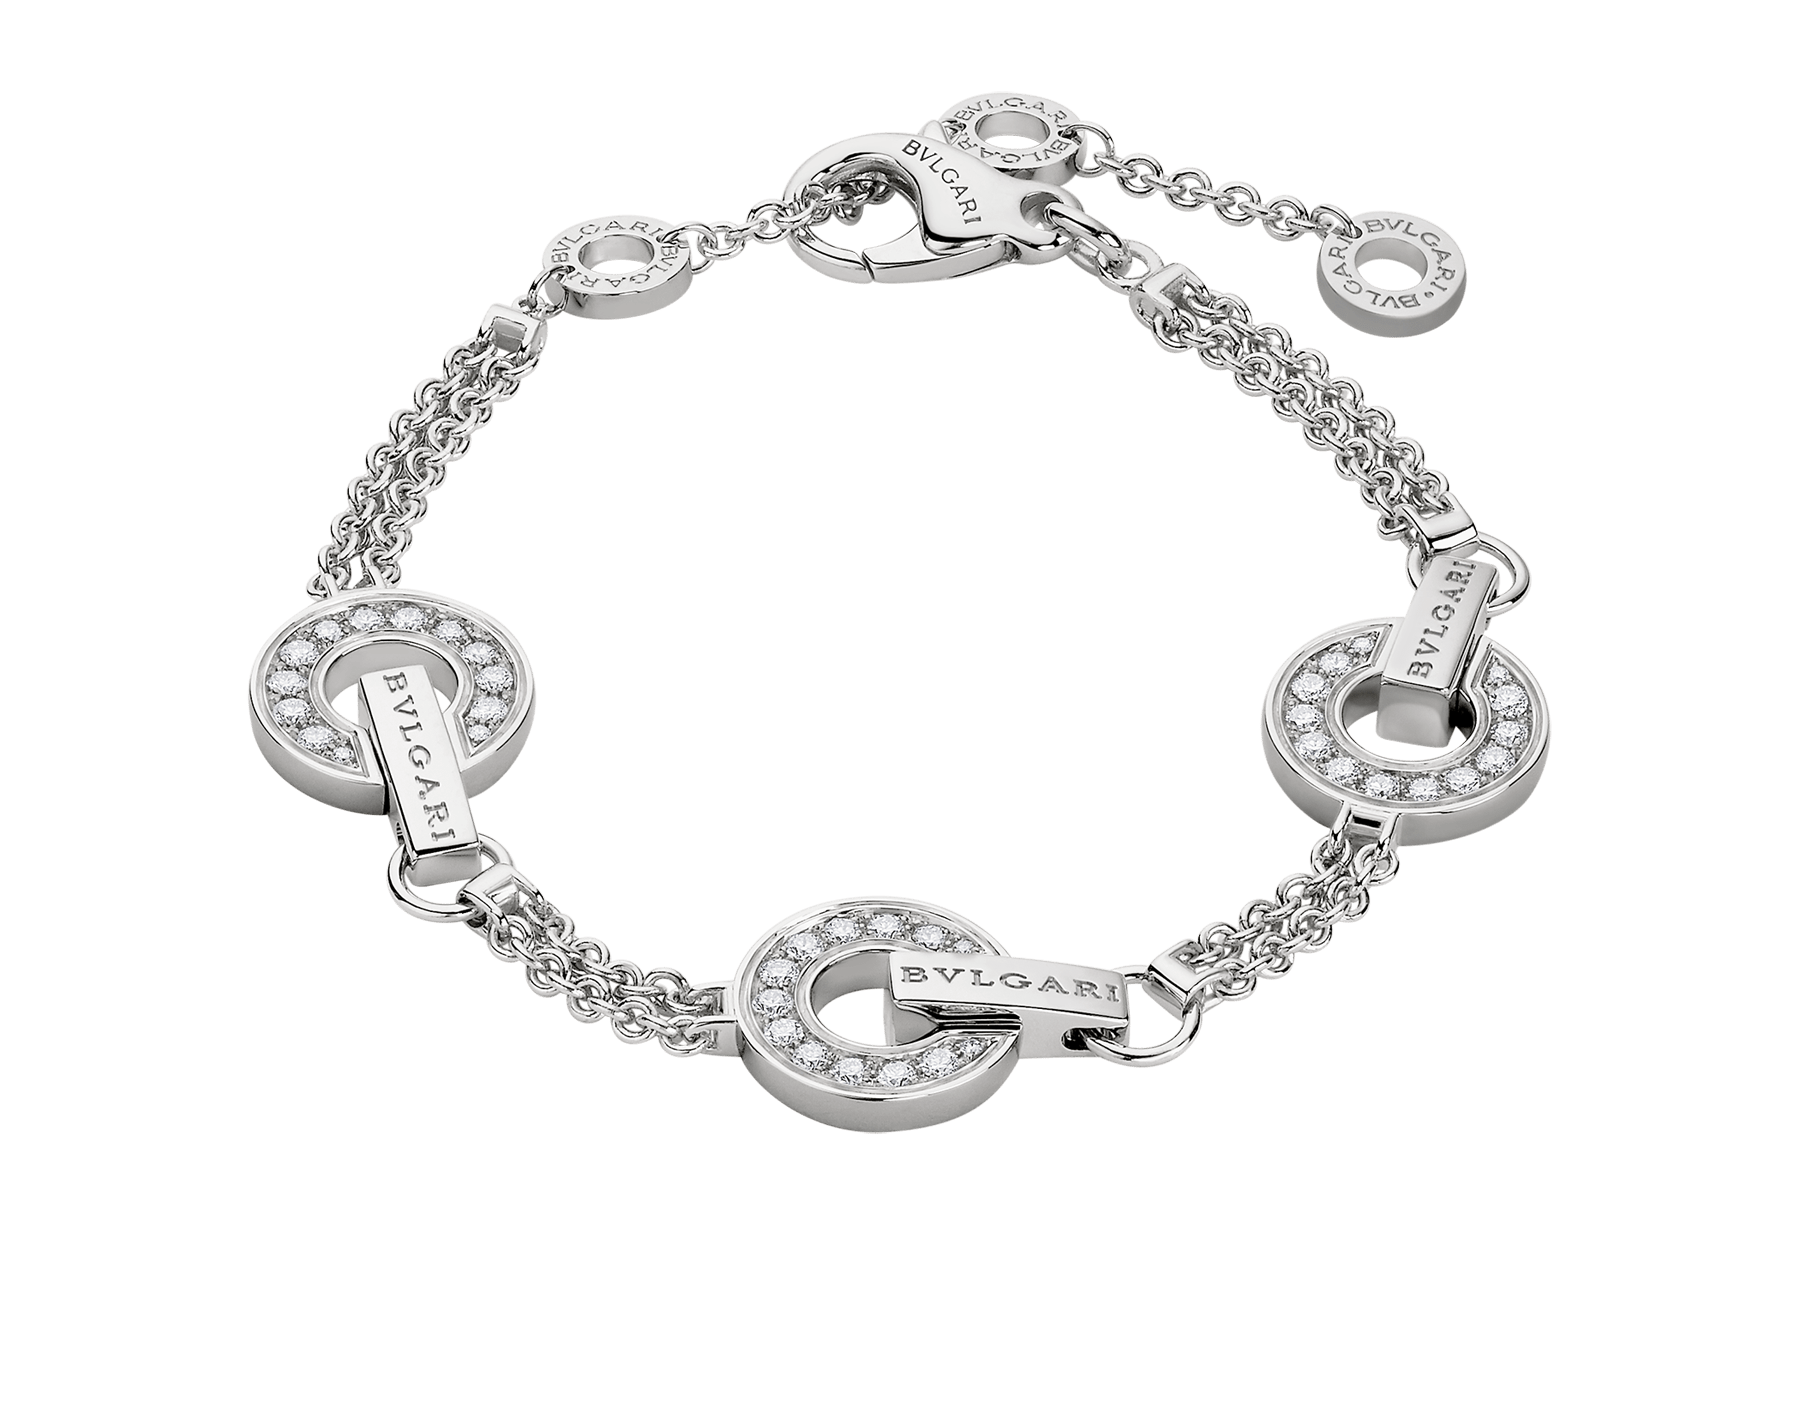 BVLGARI BVLGARI openwork 18 kt white gold bracelet set with full pavé diamonds on the circular elements BR859065 image 1